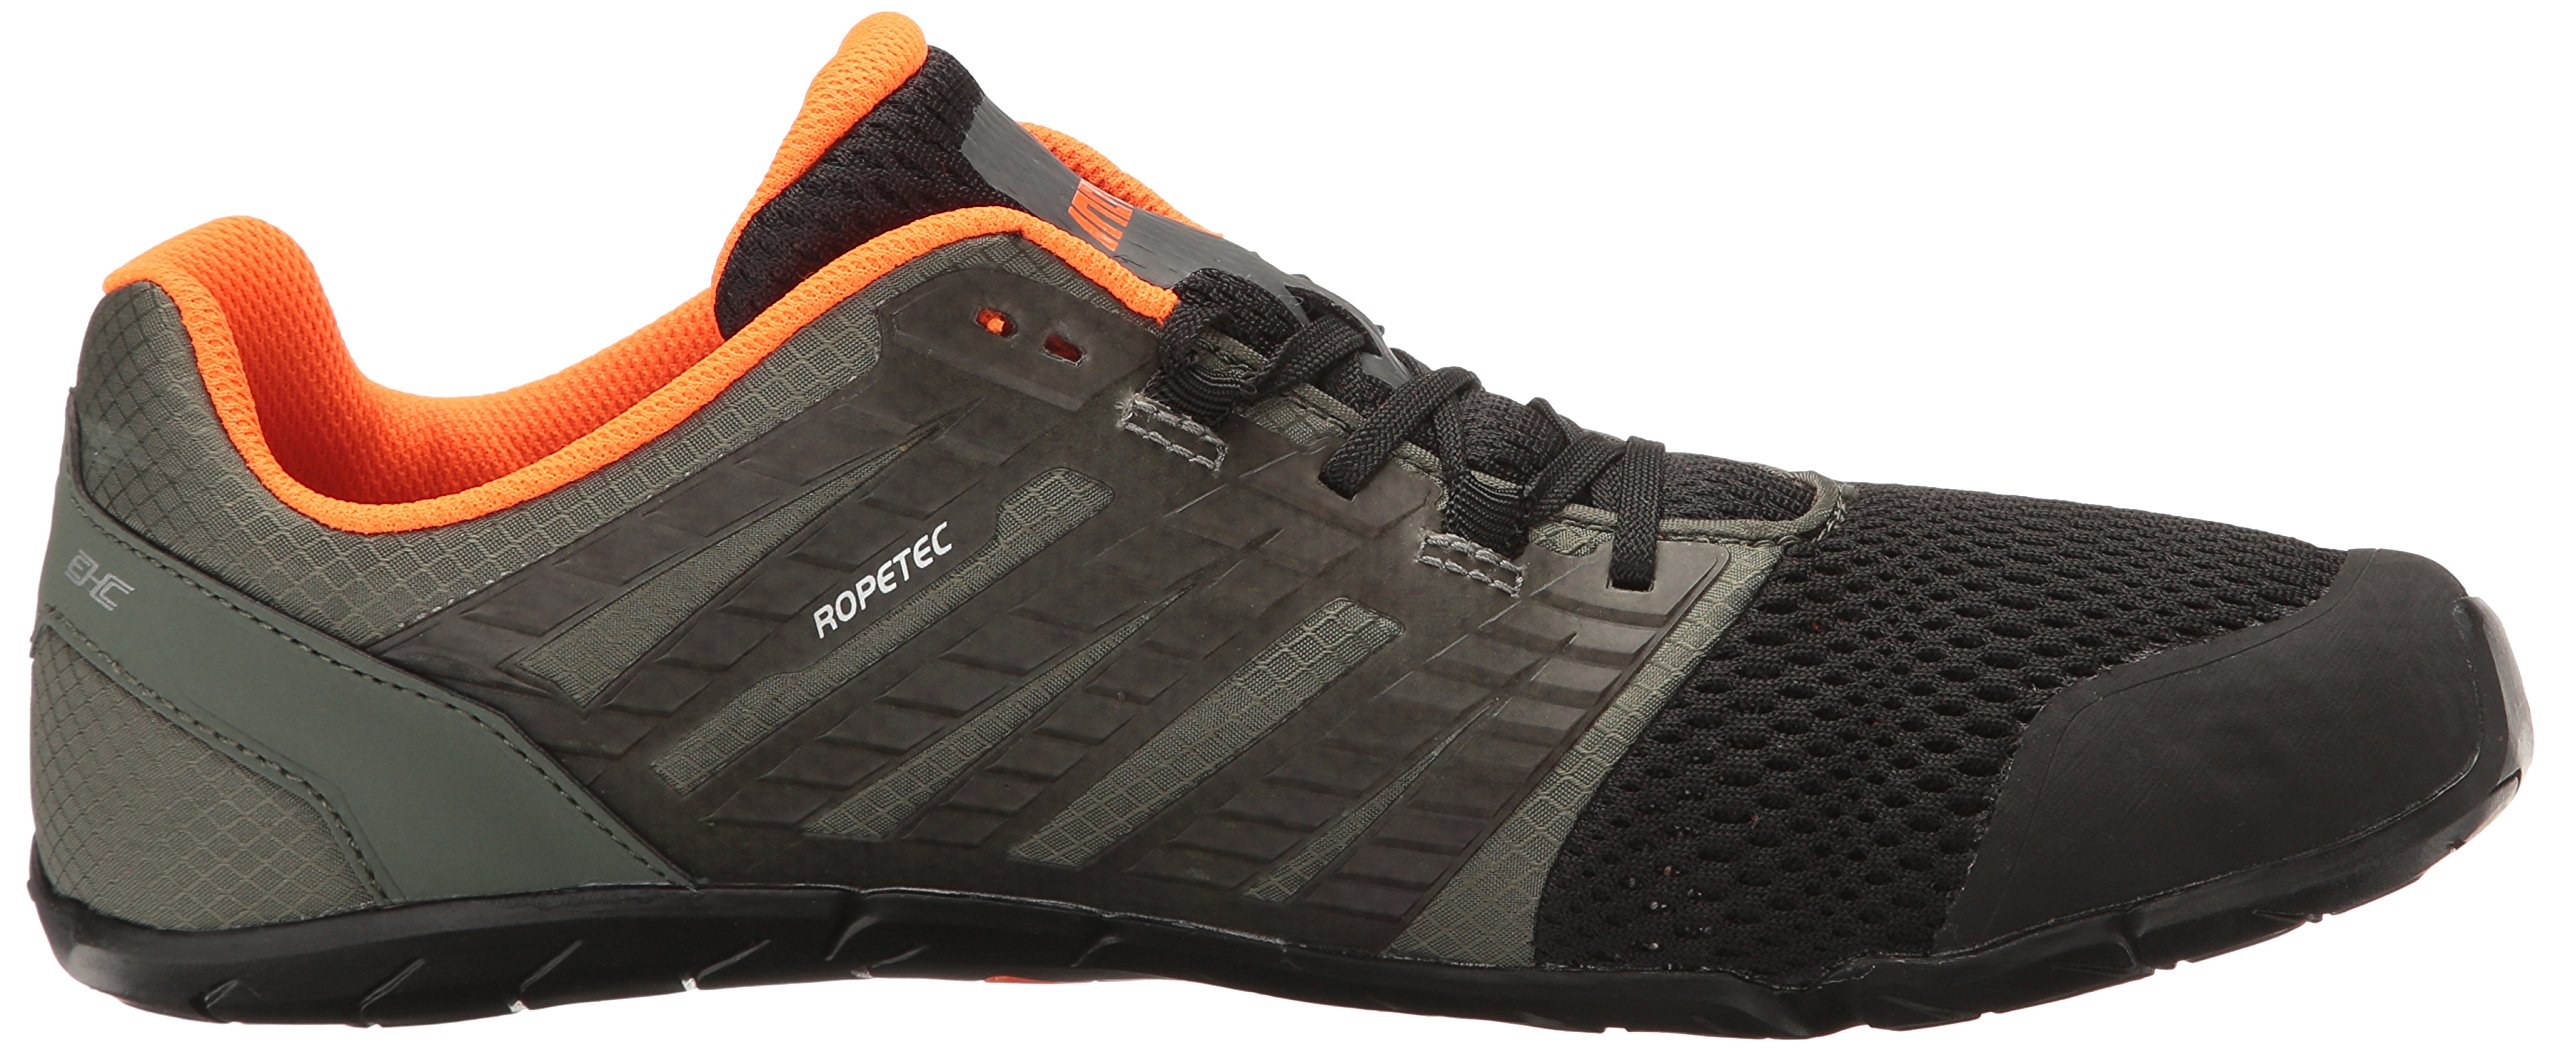 Inov-8 Men's Bare-XF 210 v2 (M) Cross Trainer Grey/Black/Orange 9 D US by Inov-8 (Image #7)